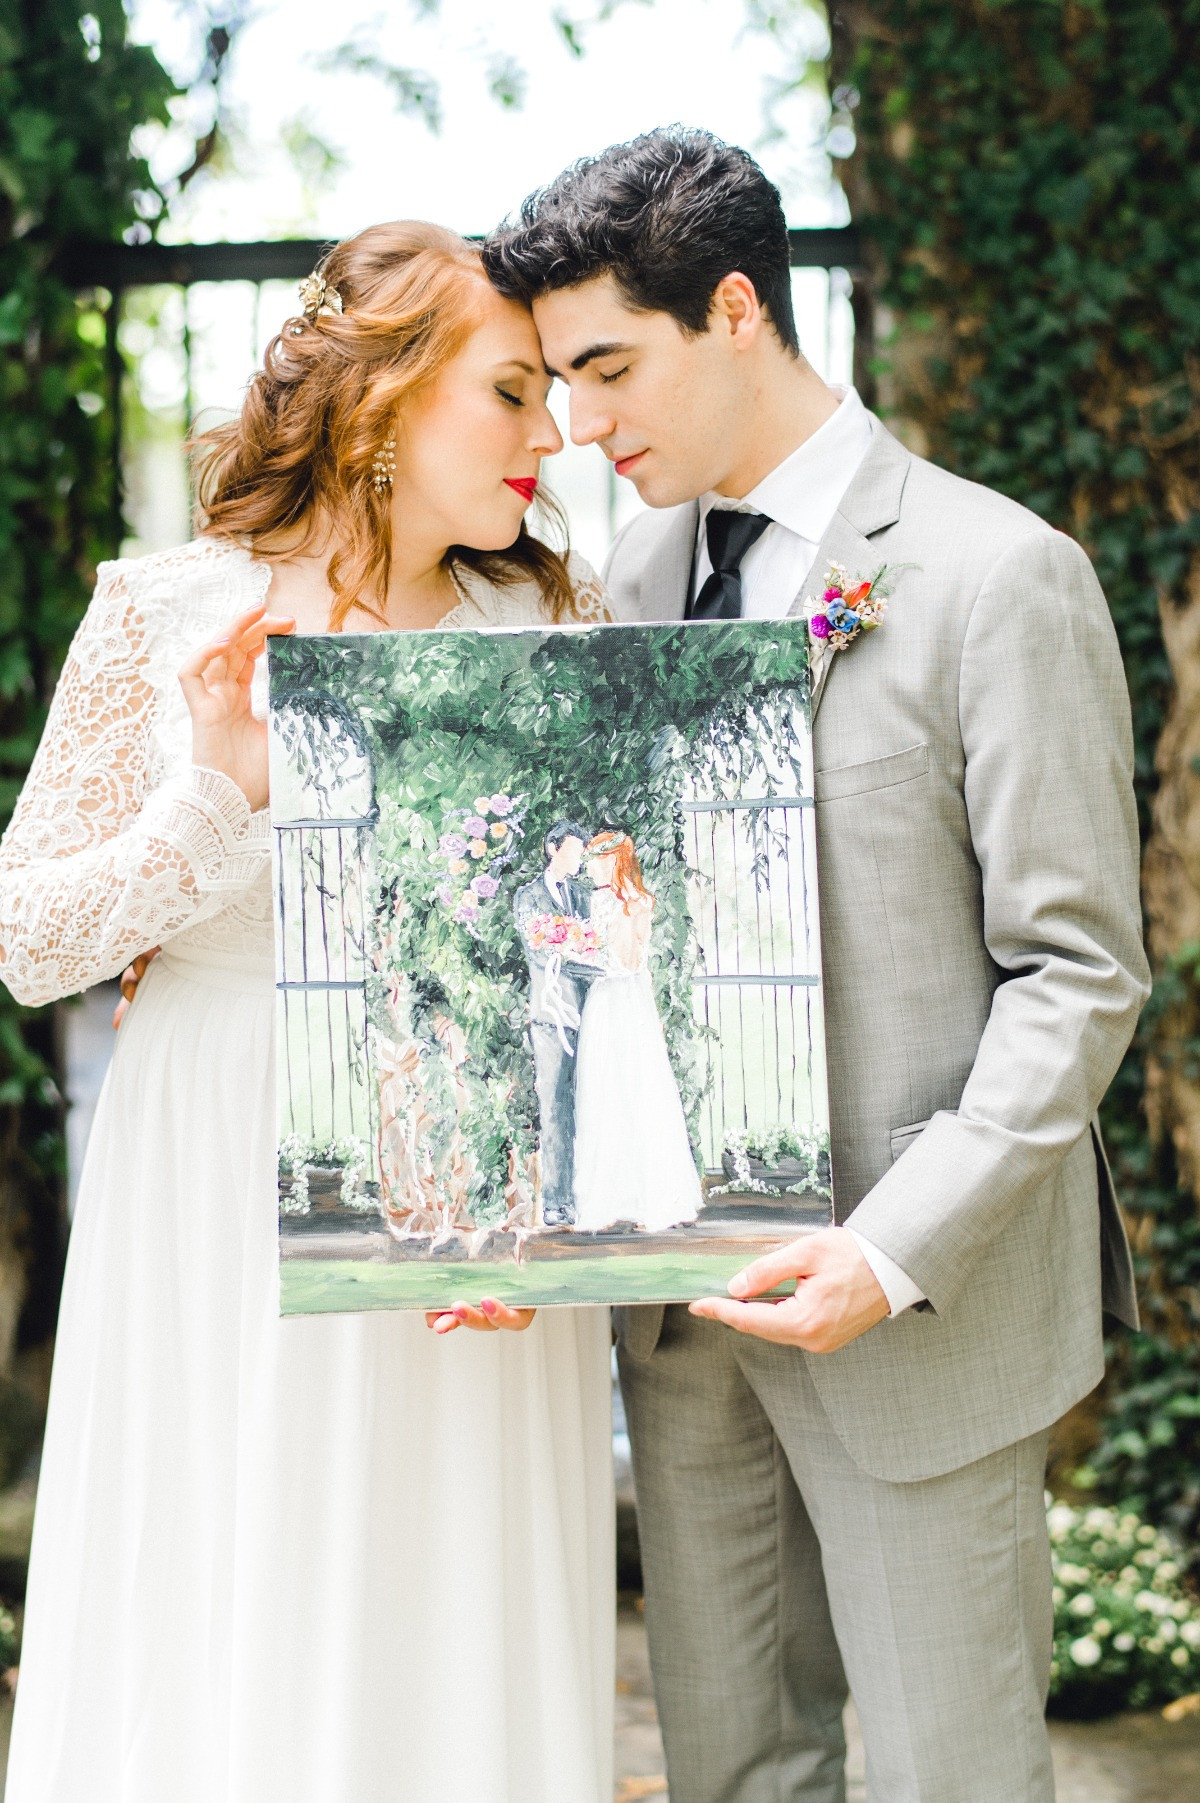 Live painting for your ceremony